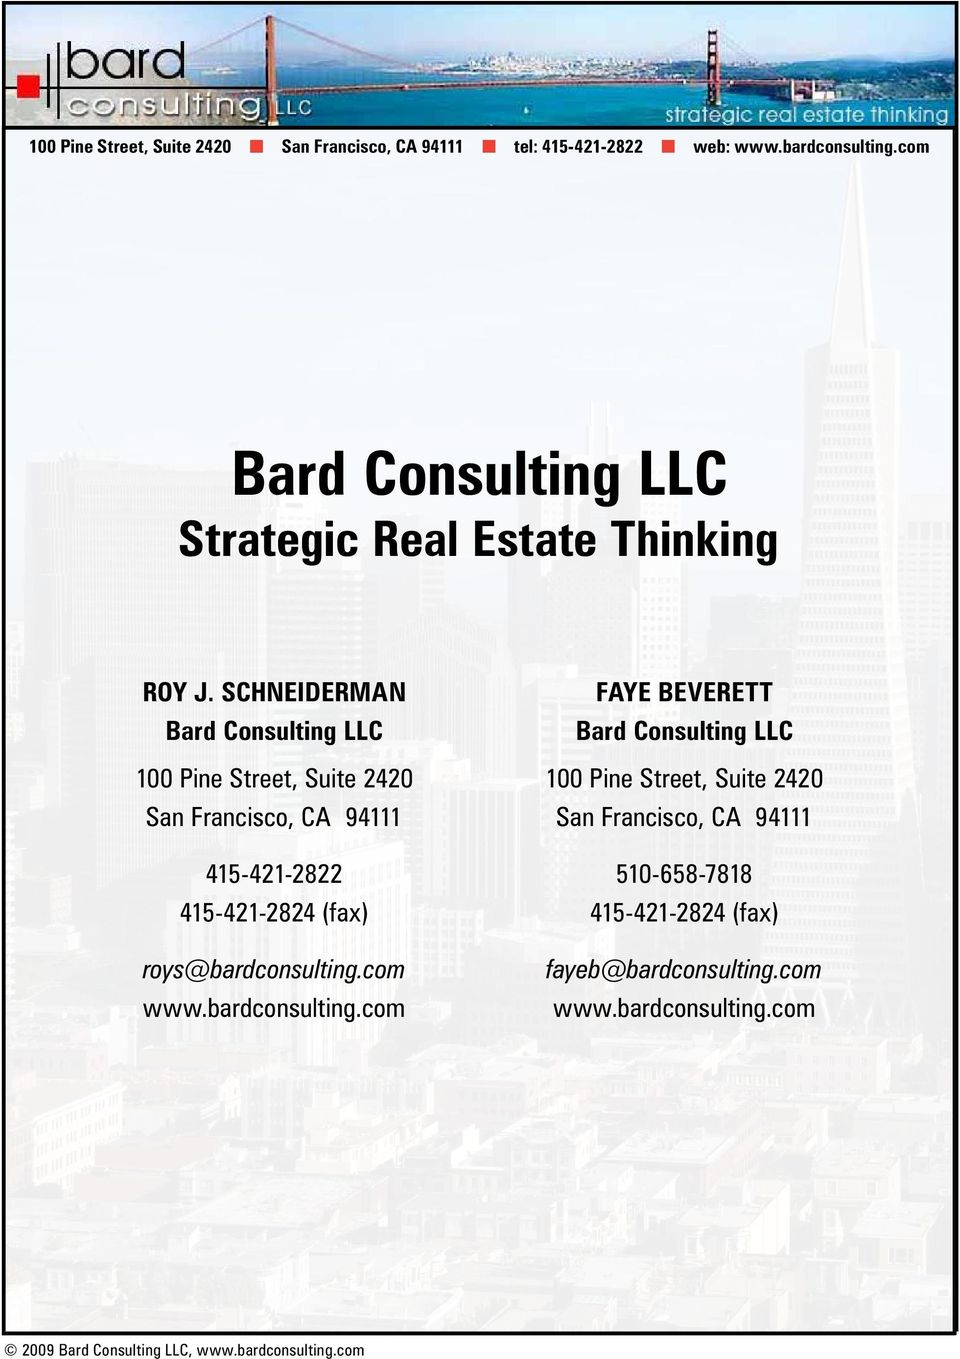 SCHNEIDERMAN Bard Consulting LLC 100 Pine Street, Suite 2420 San Francisco, CA 94111 415-421-2822 415-421-2824 (fax)